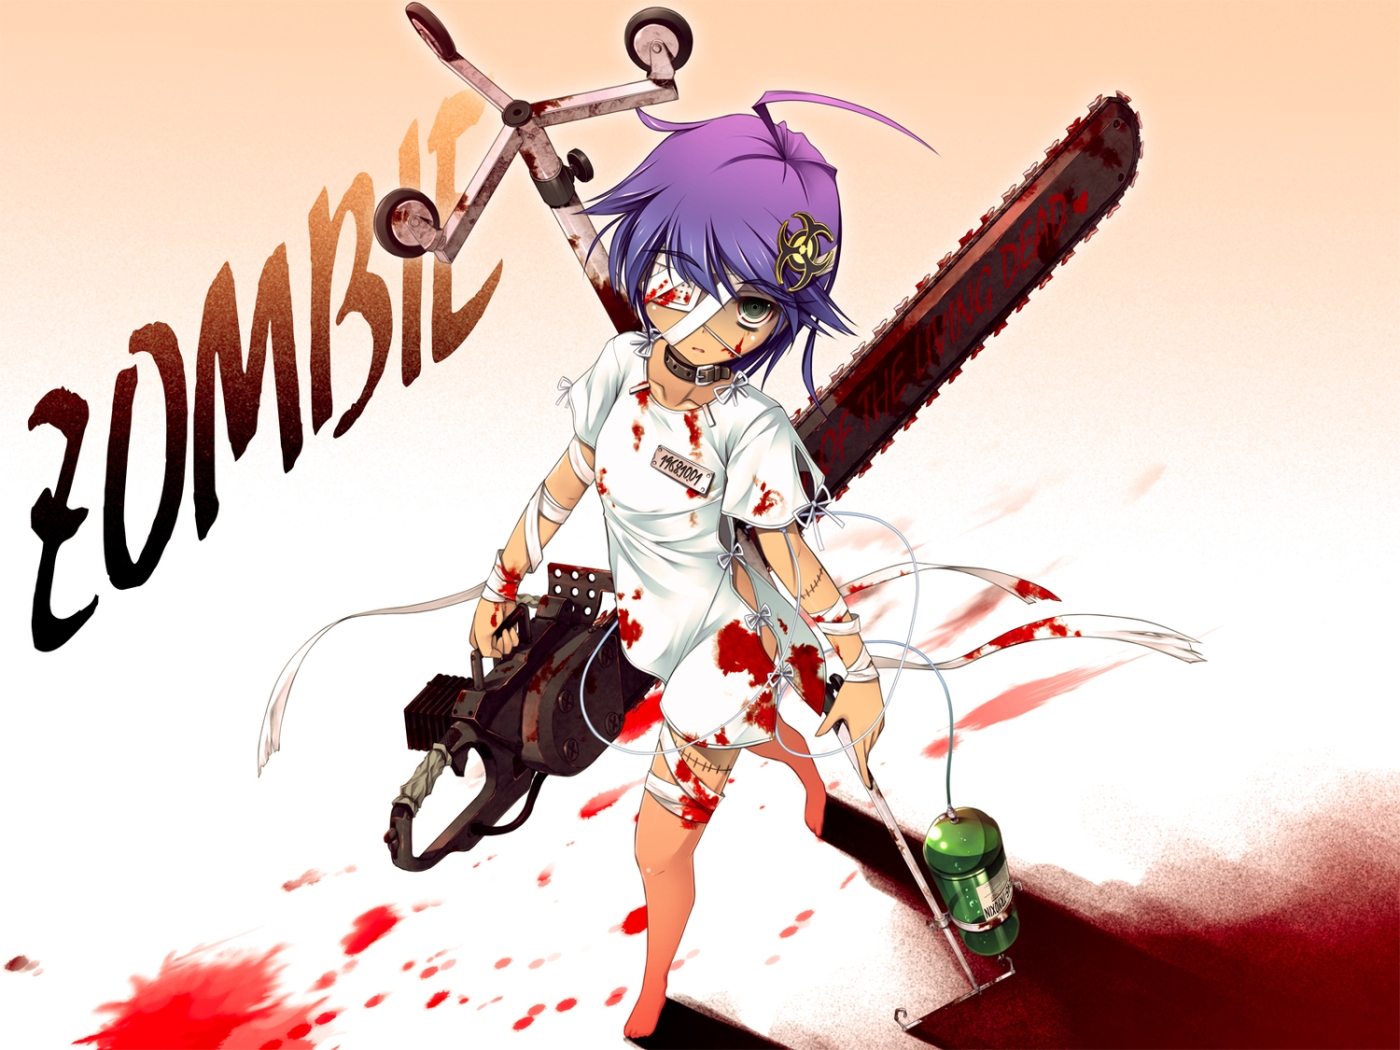 Wallpaper Of The Week Chainsaw Girl Randomness Thing